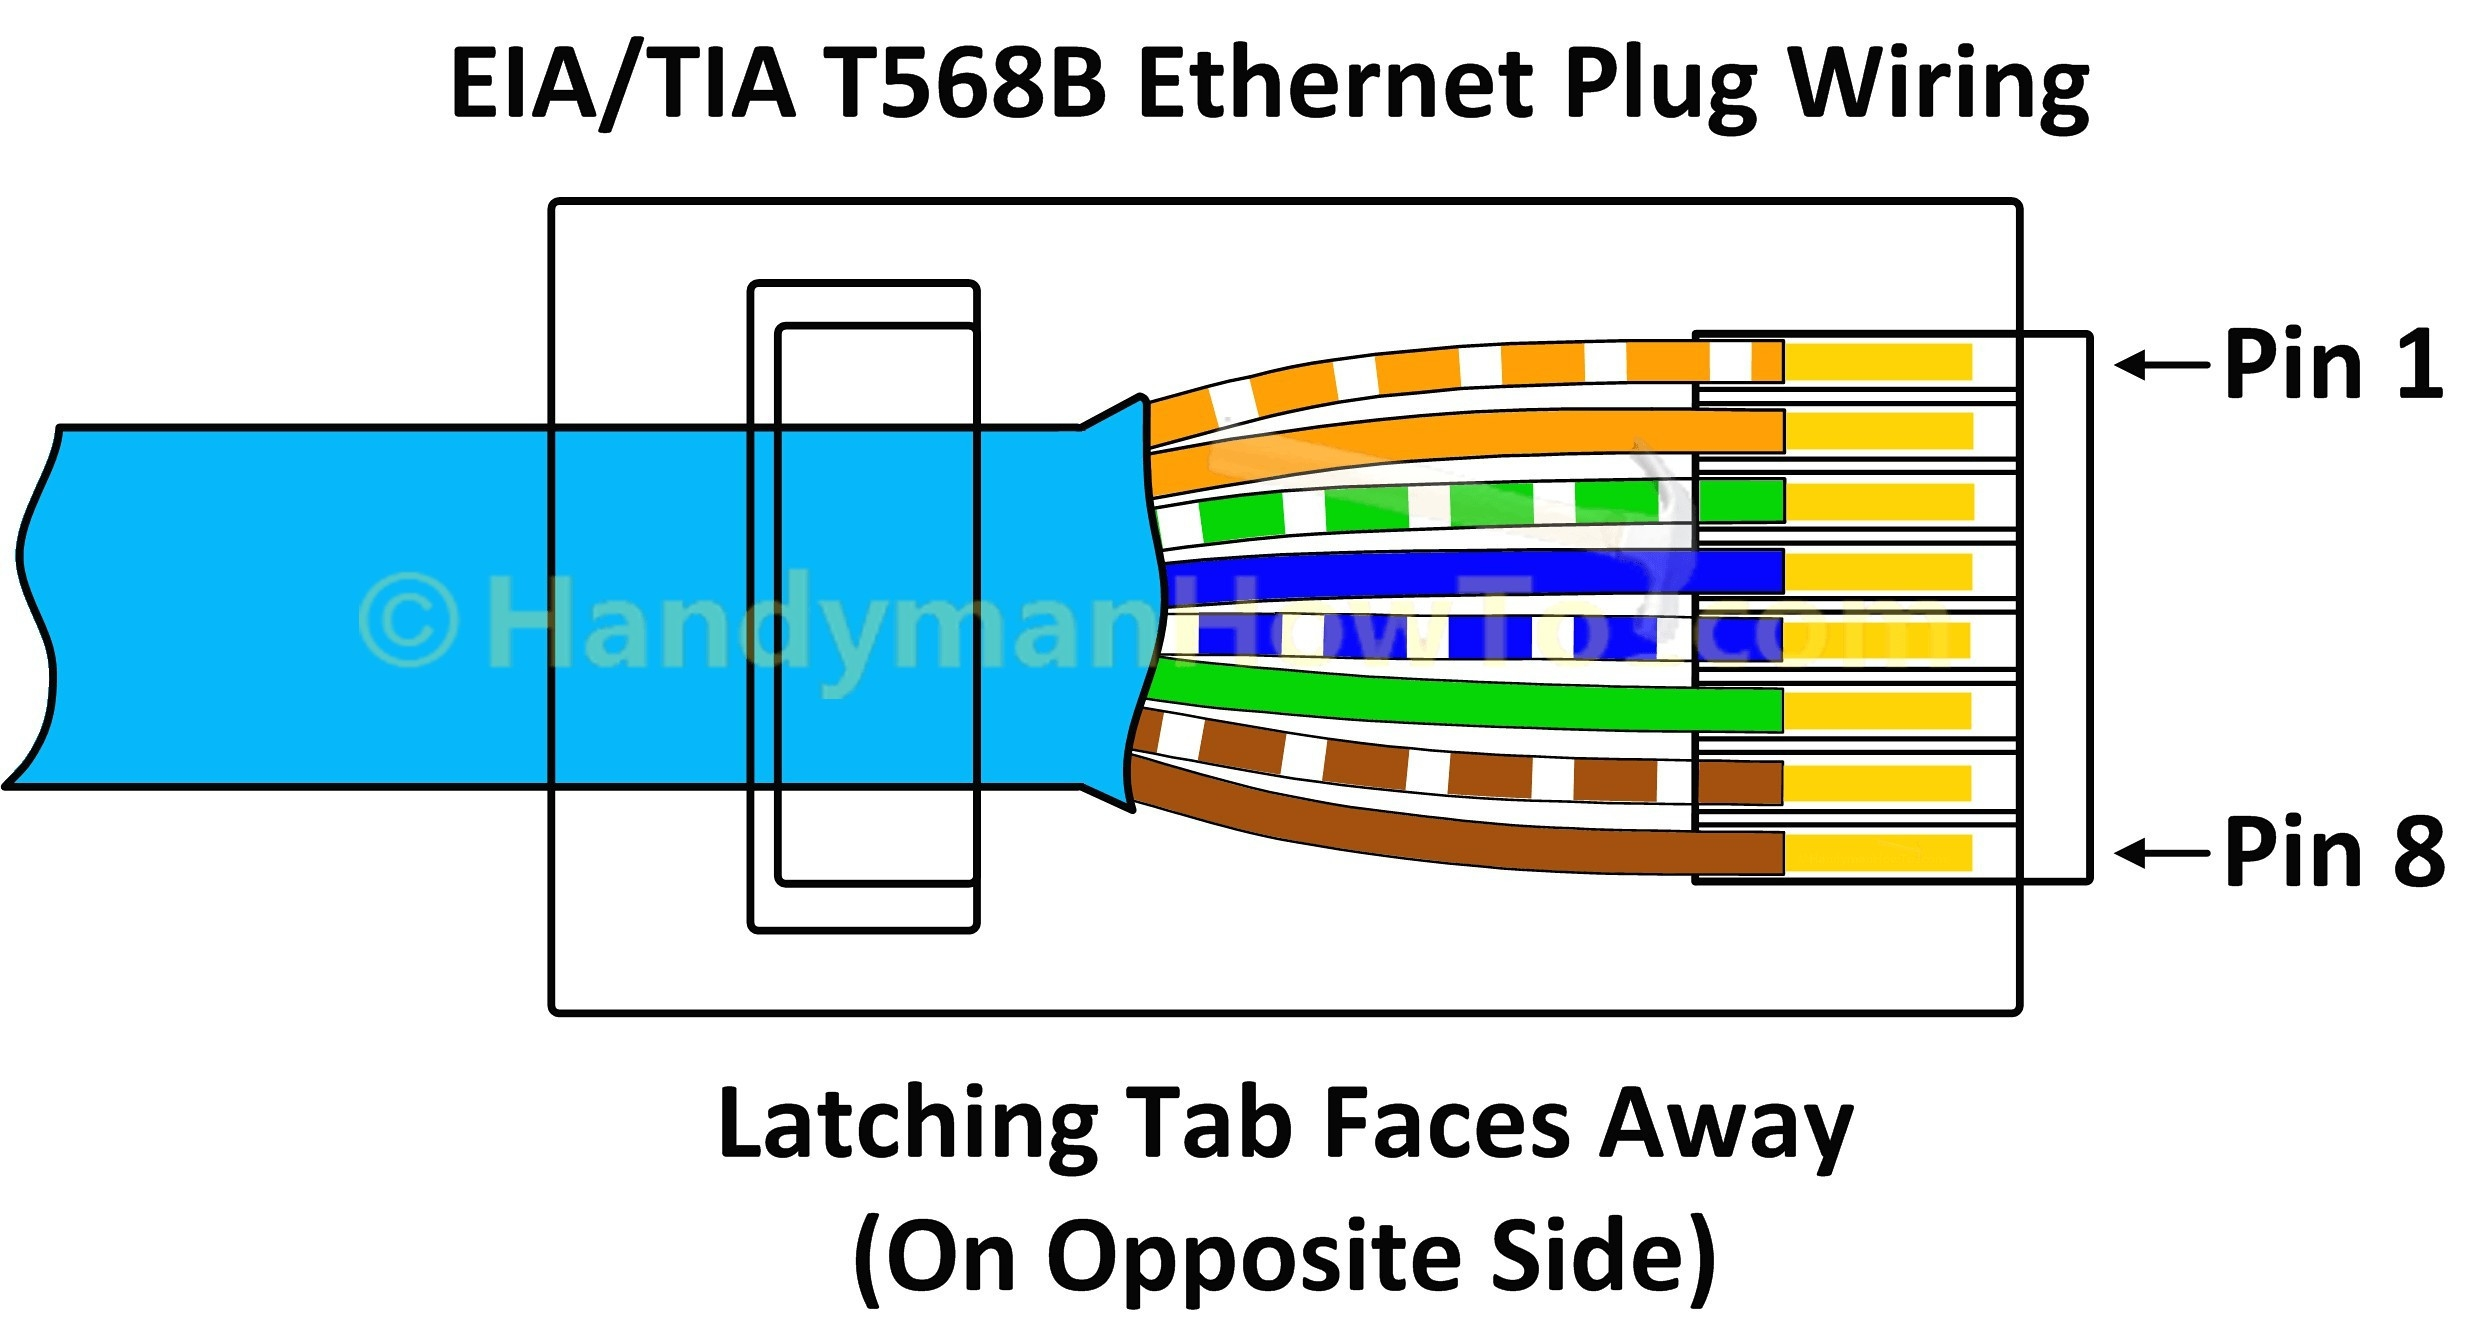 cat5 b wiring diagram Download-Wiring Diagram for Cat5 Crossover Cable New Cat5 B Wiring Diagram Best 19-r